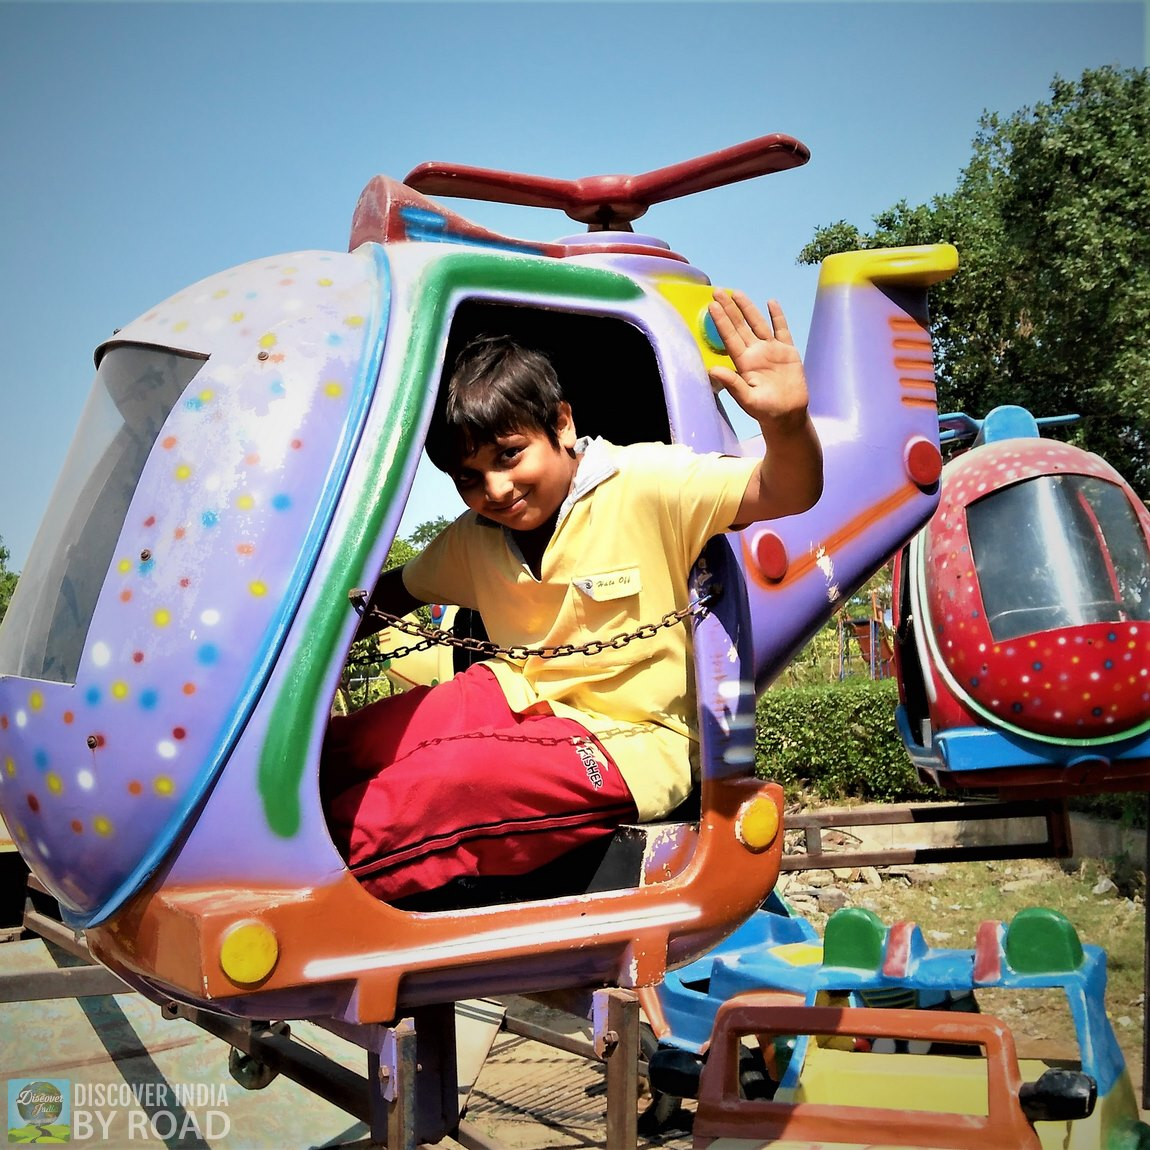 Toy Helicopter ride at hill garden bhuj